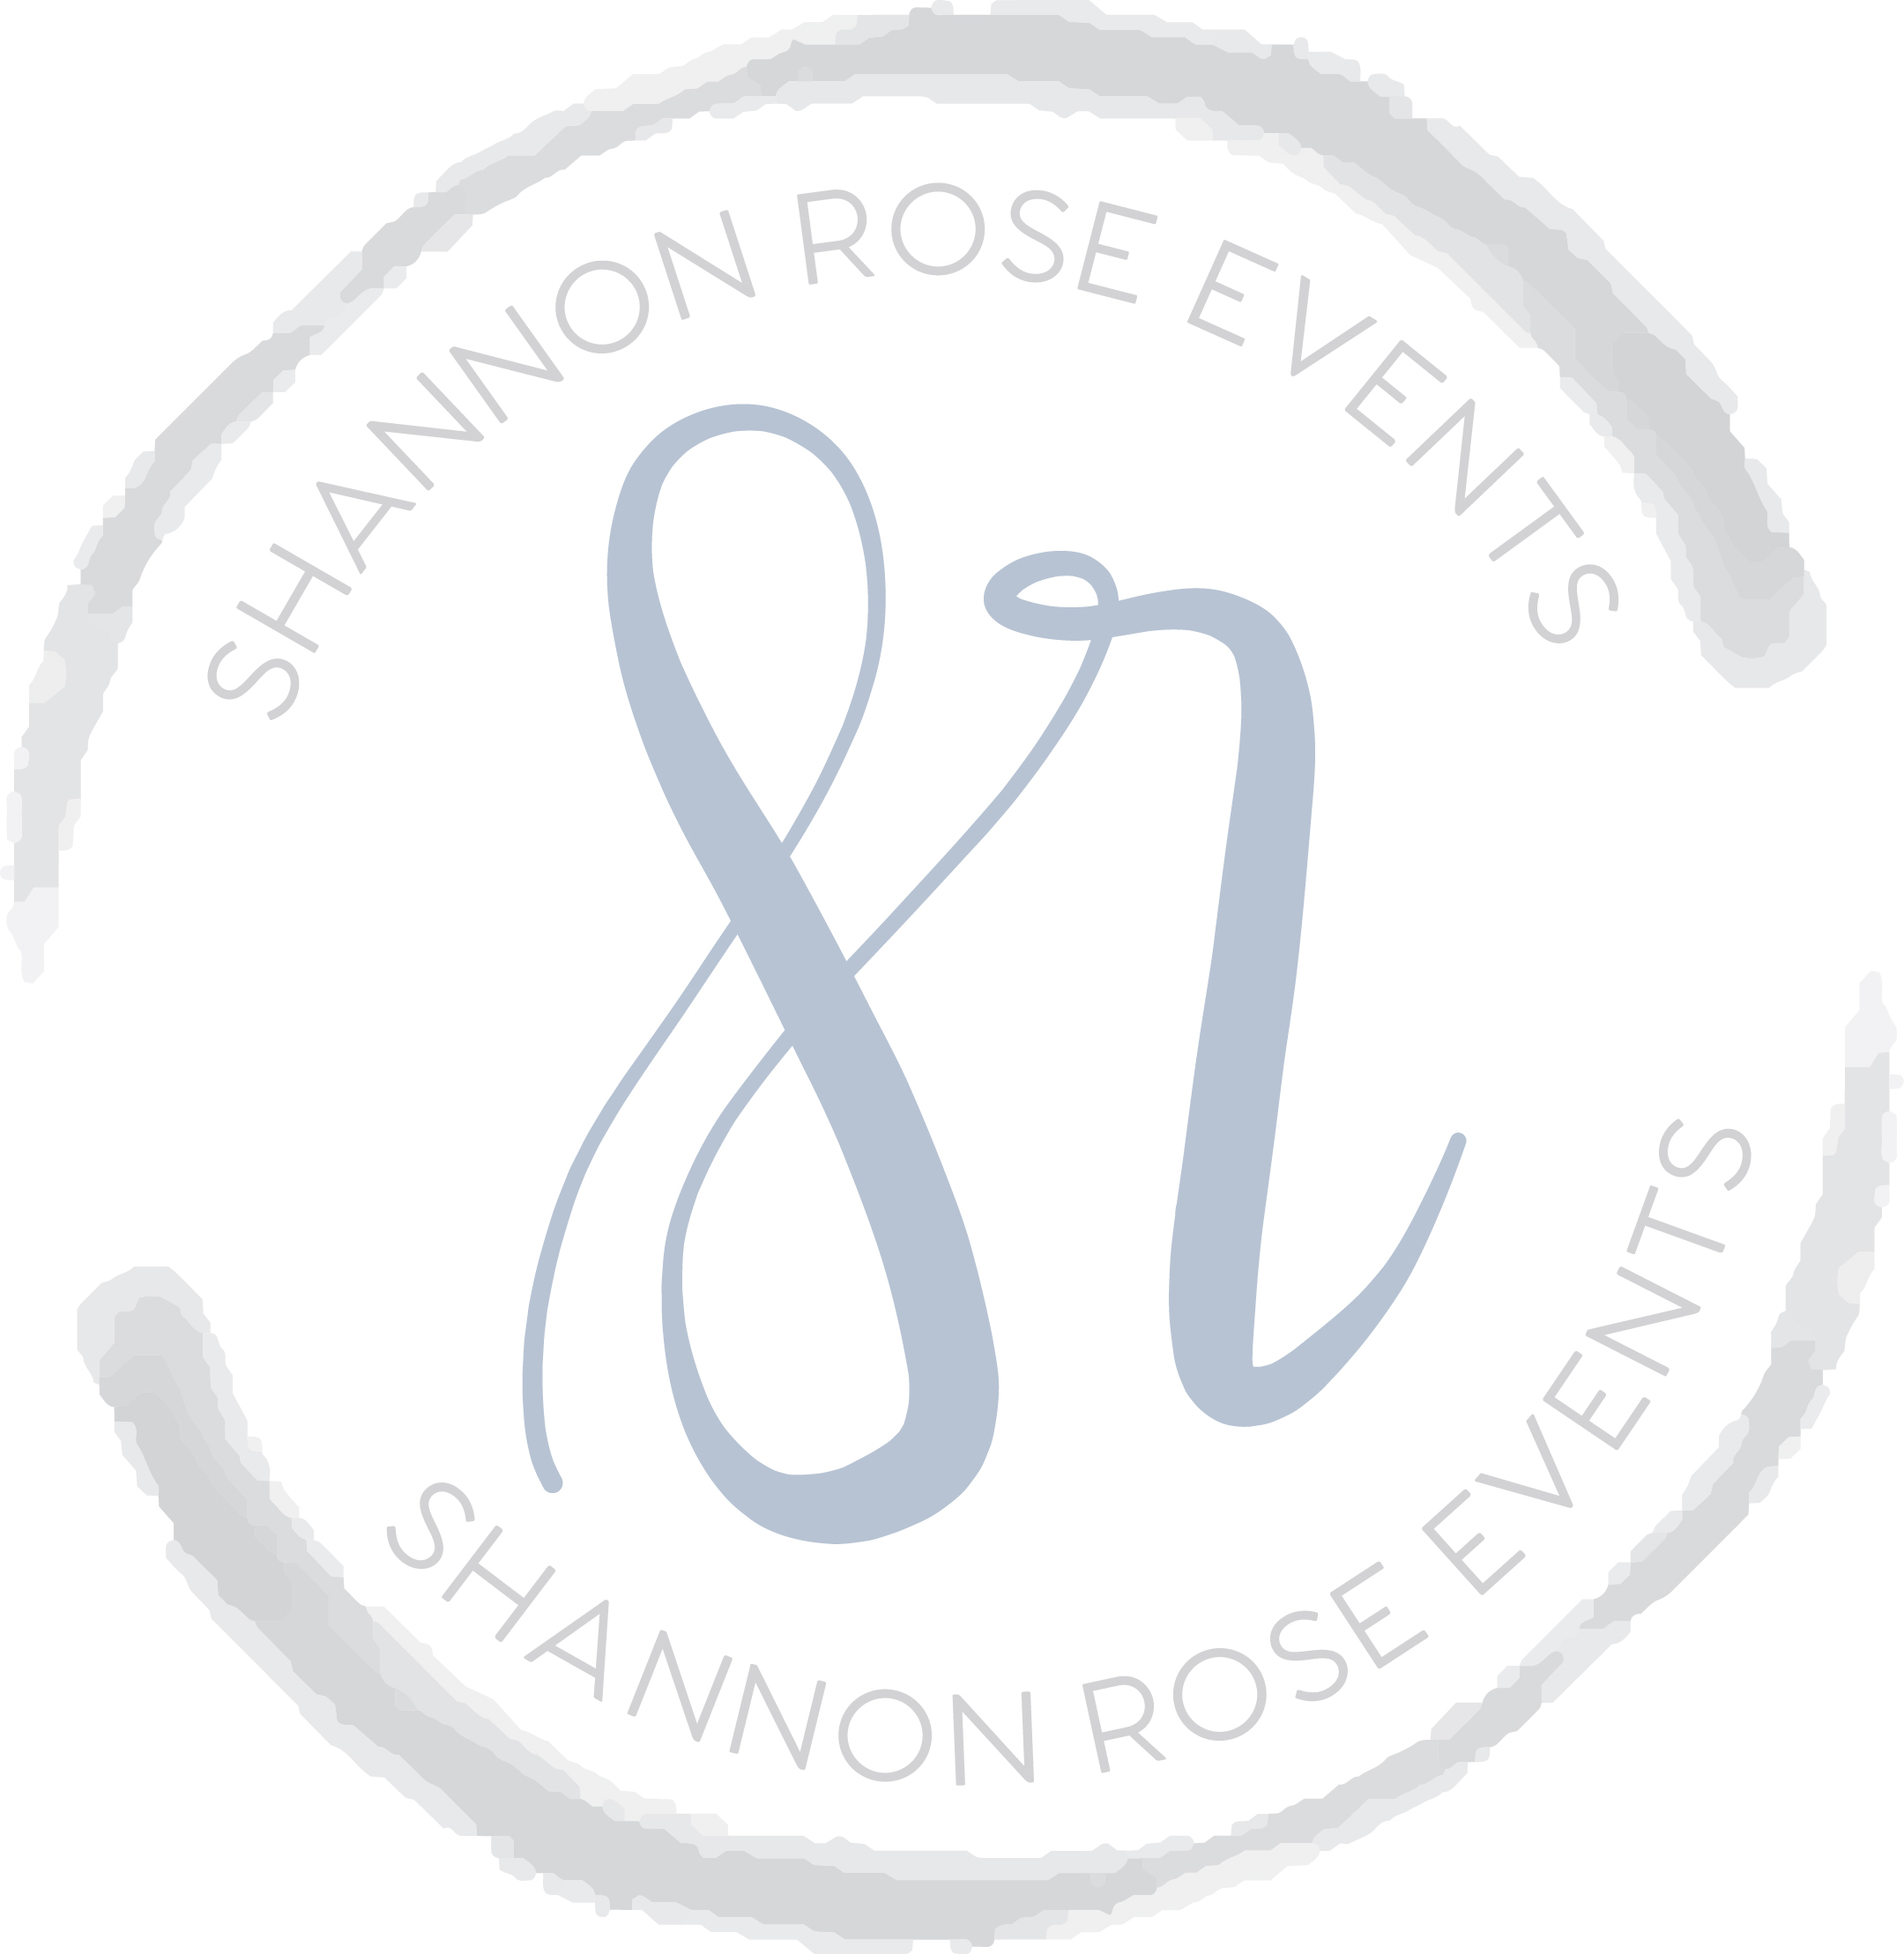 Shannon Rose Events Wedding Planner